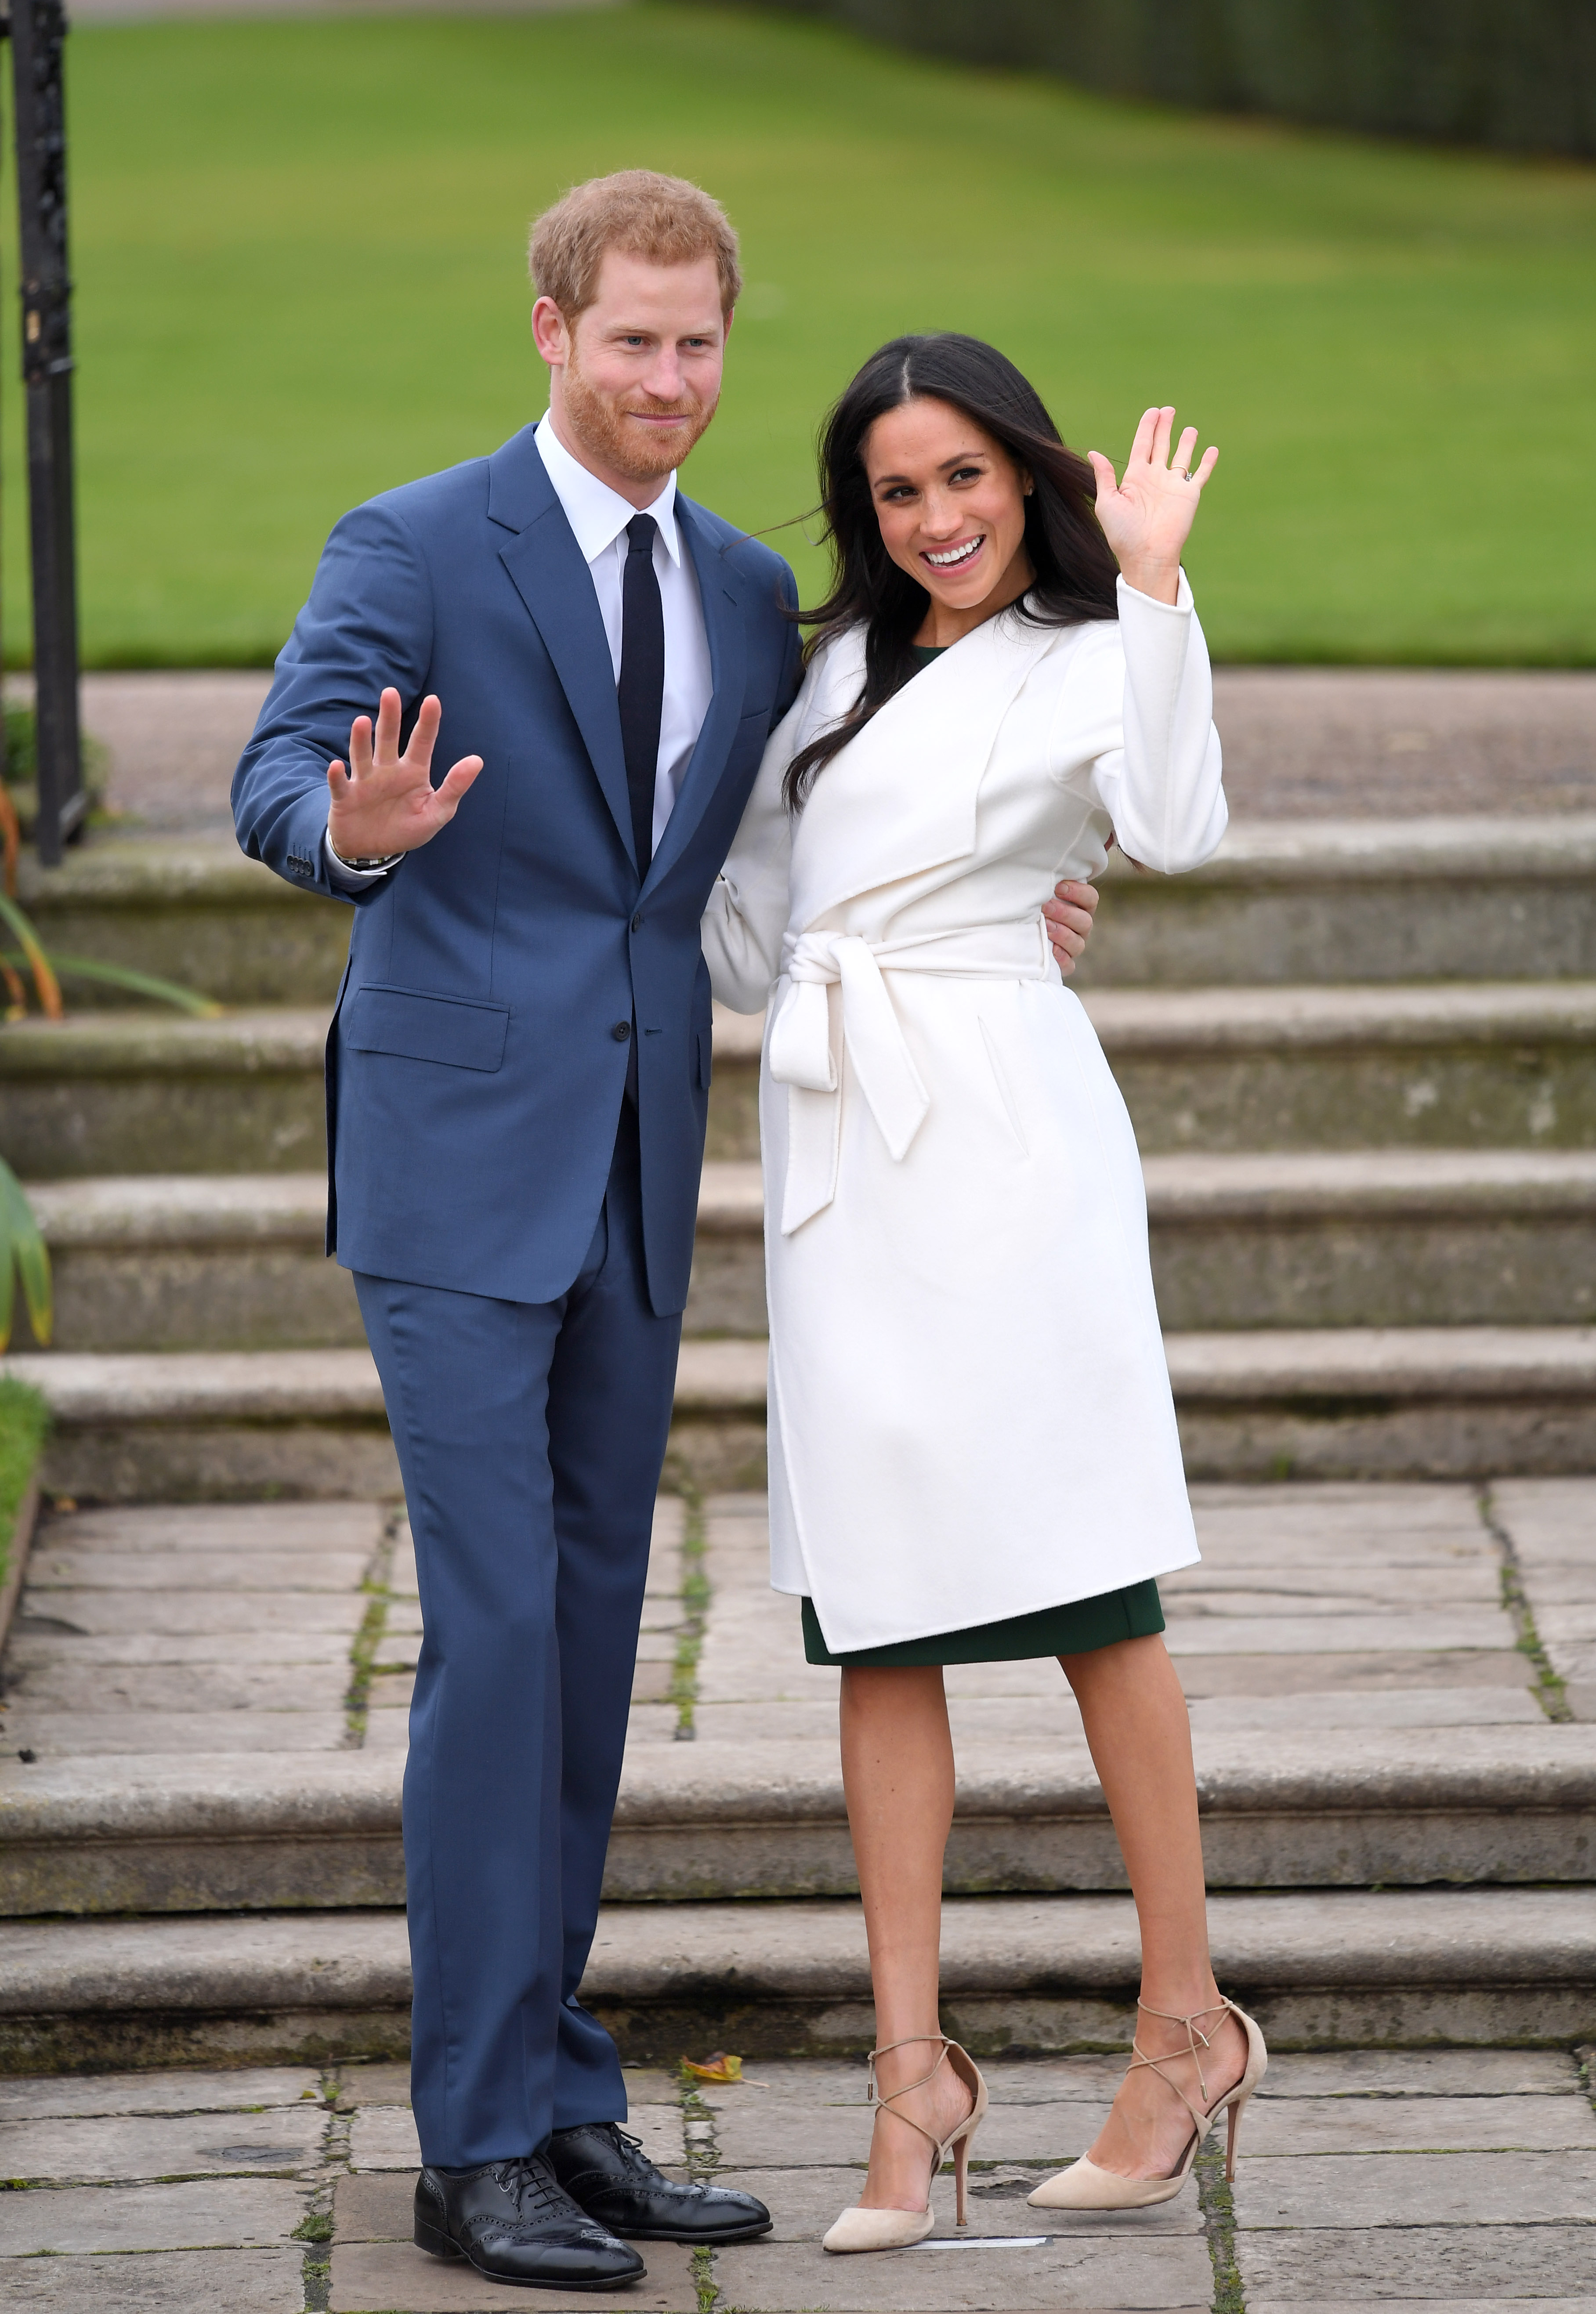 Meghan Markle Kensington Palace Getty Images